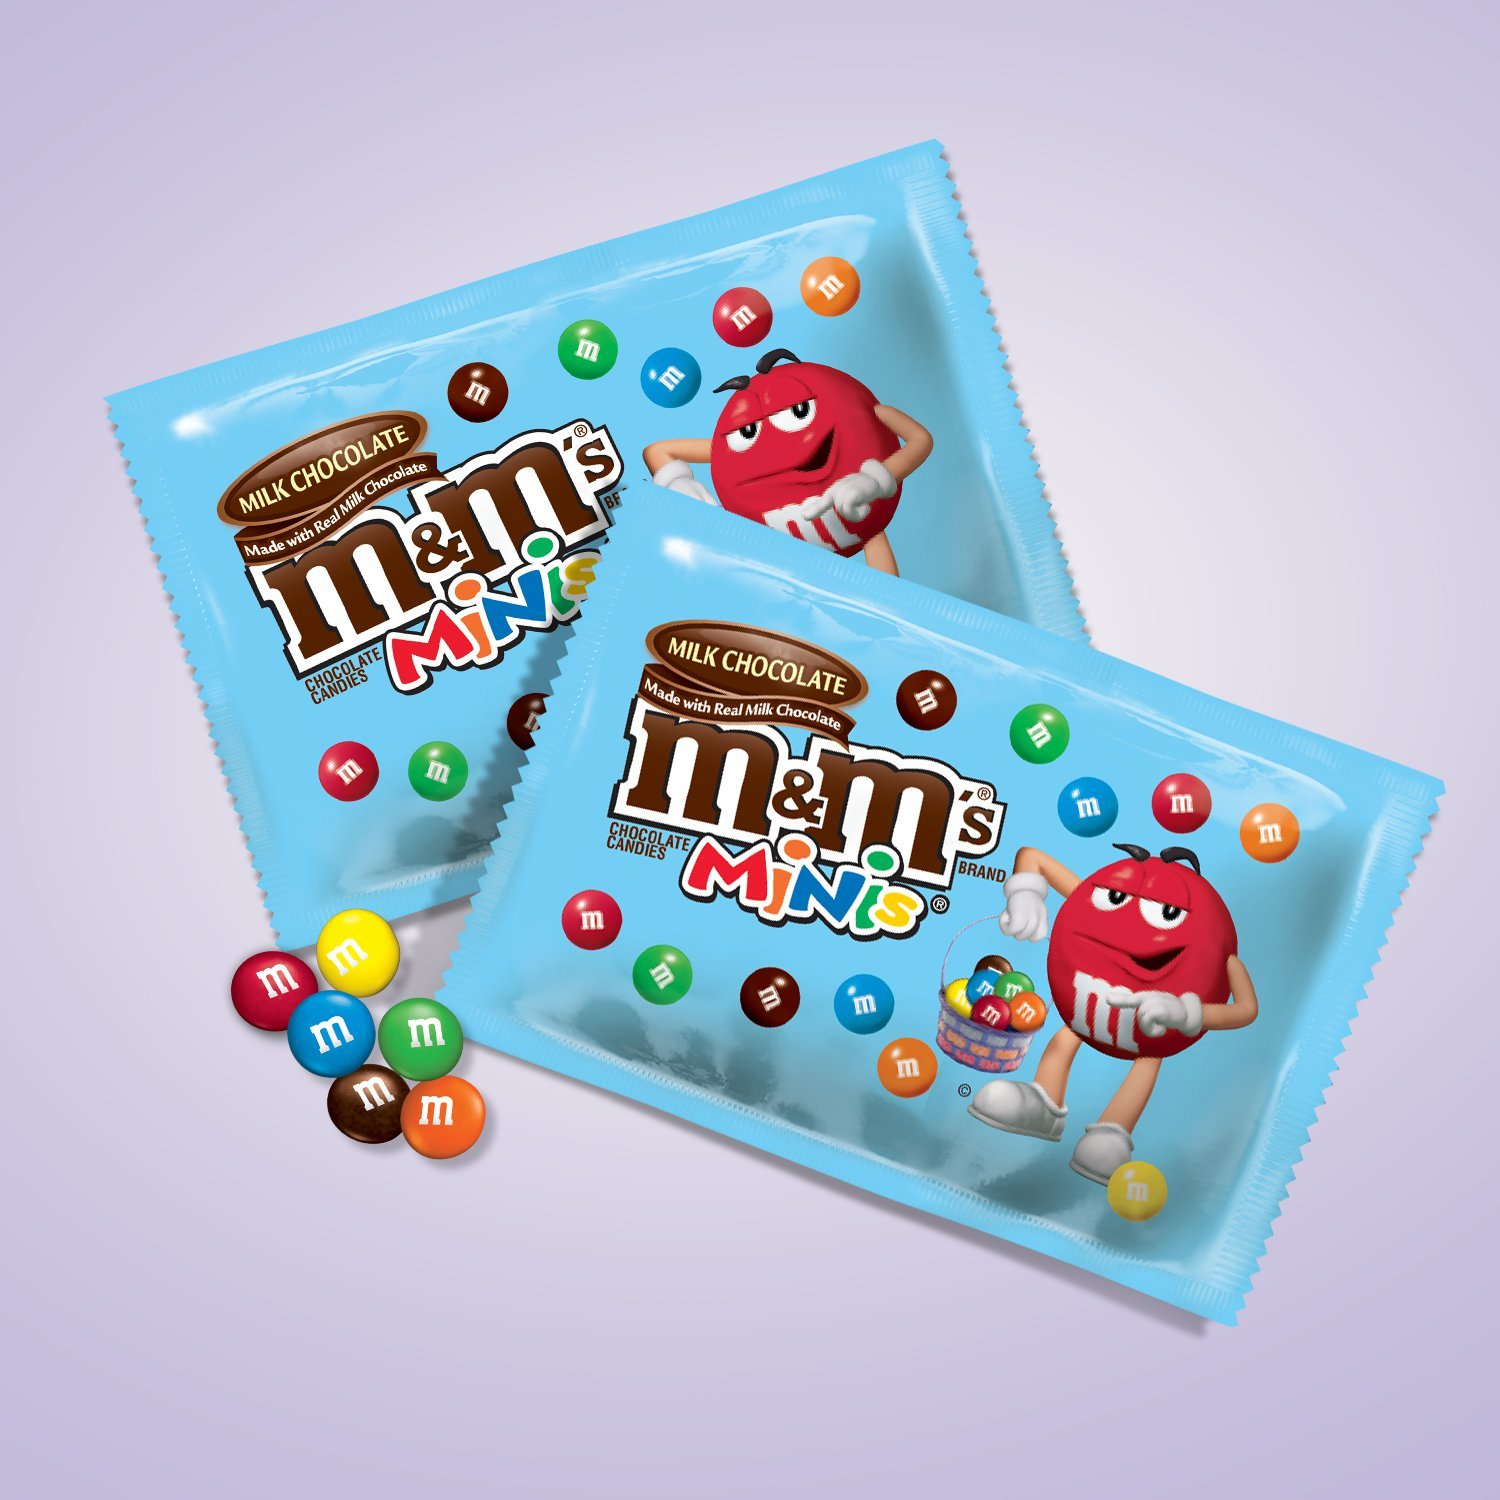 Amazon.com : M&M'S Easter Milk Chocolate Fun Size MINIS Size Candy ...